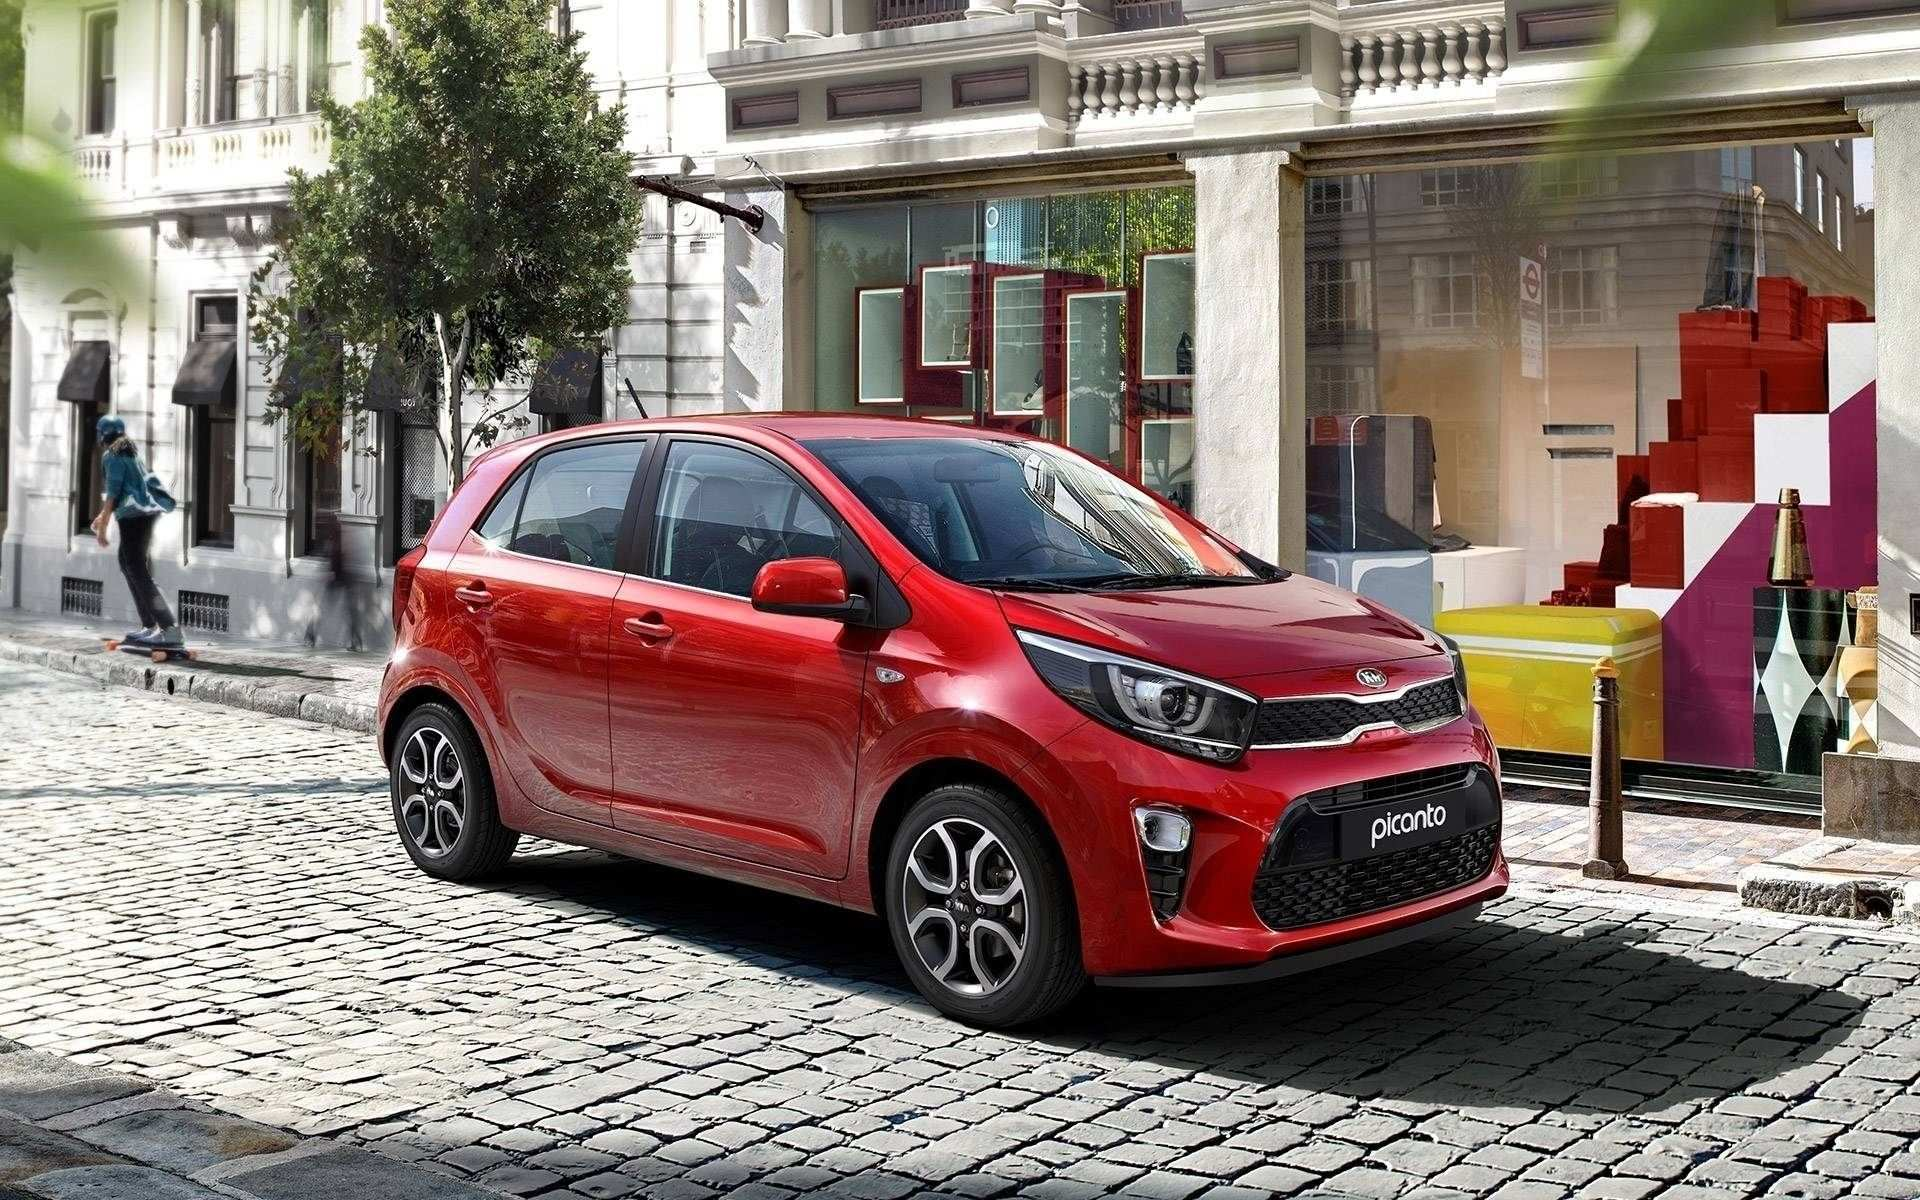 65 All New Kia Picanto 2020 New Concept Style with Kia Picanto 2020 New Concept